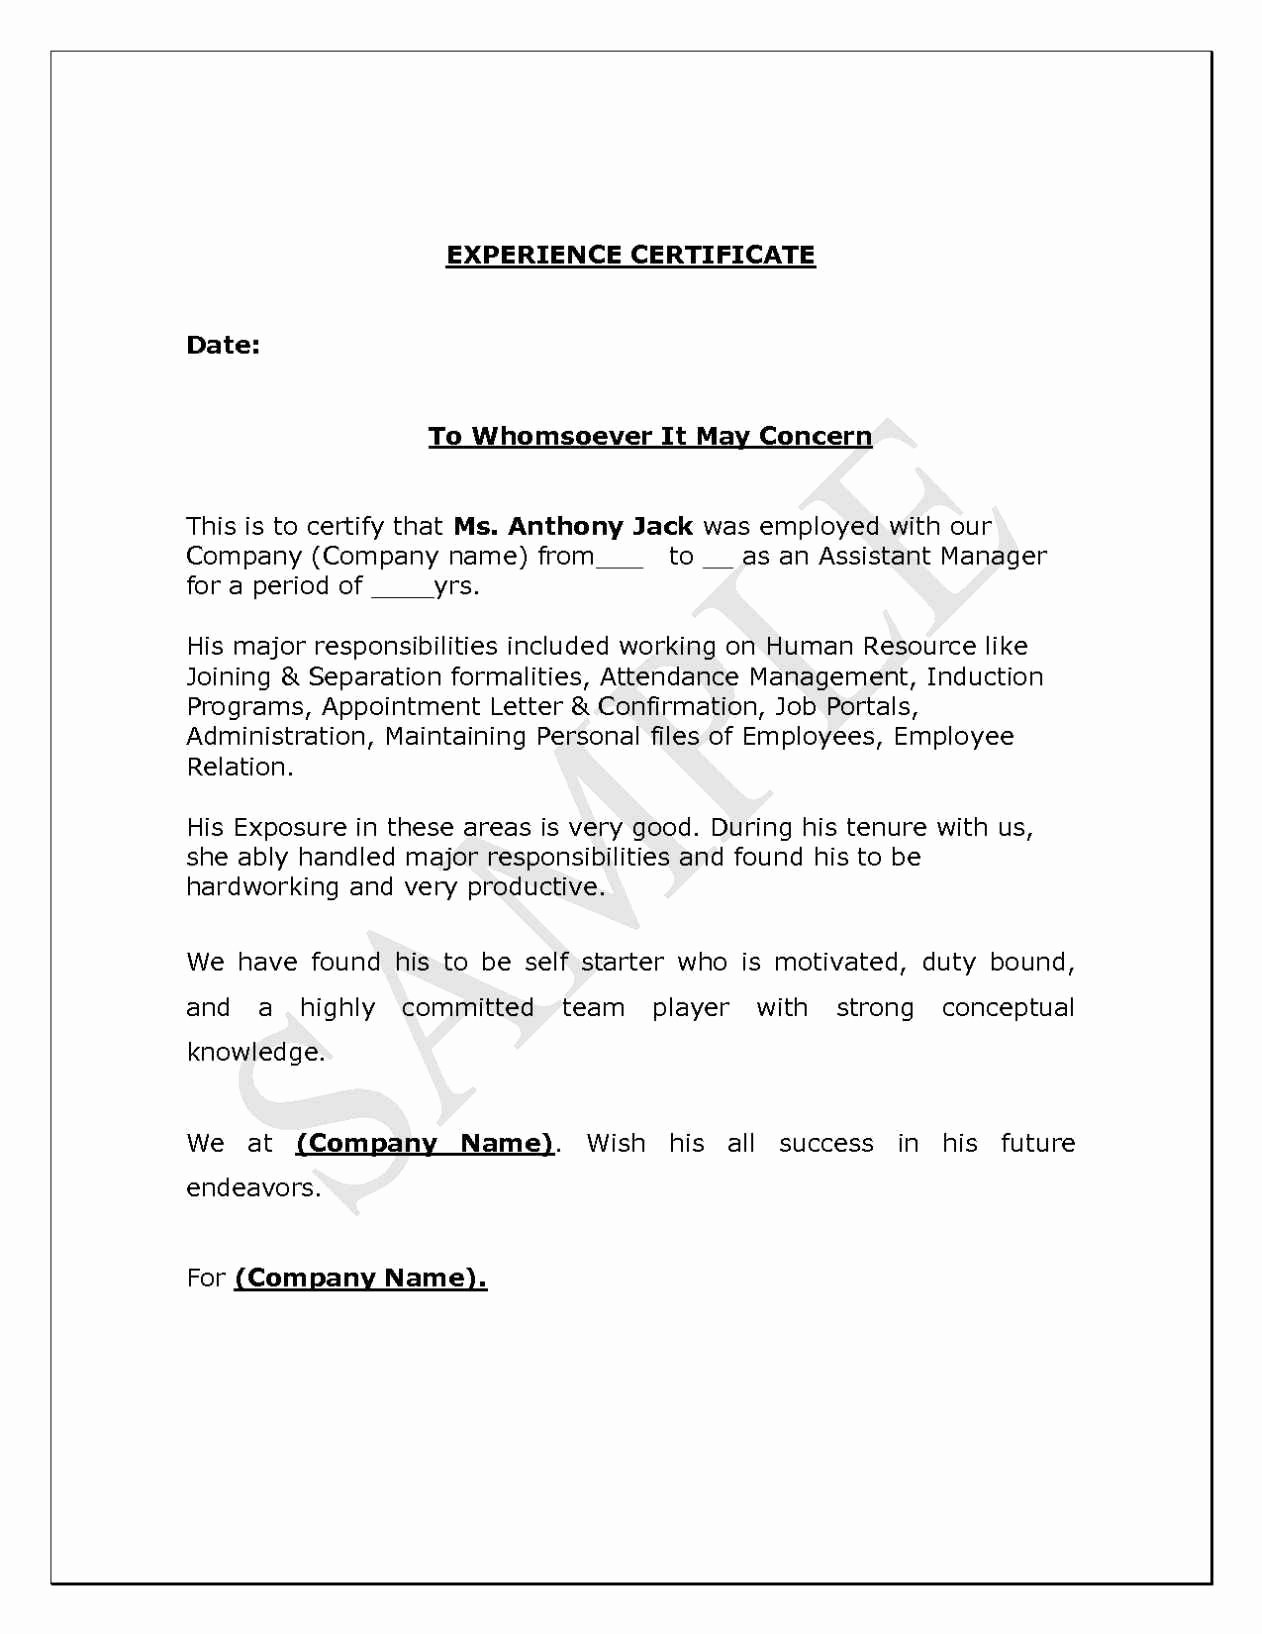 Separation Letter to Employee Fresh Letter Separation From Employer Template Samples